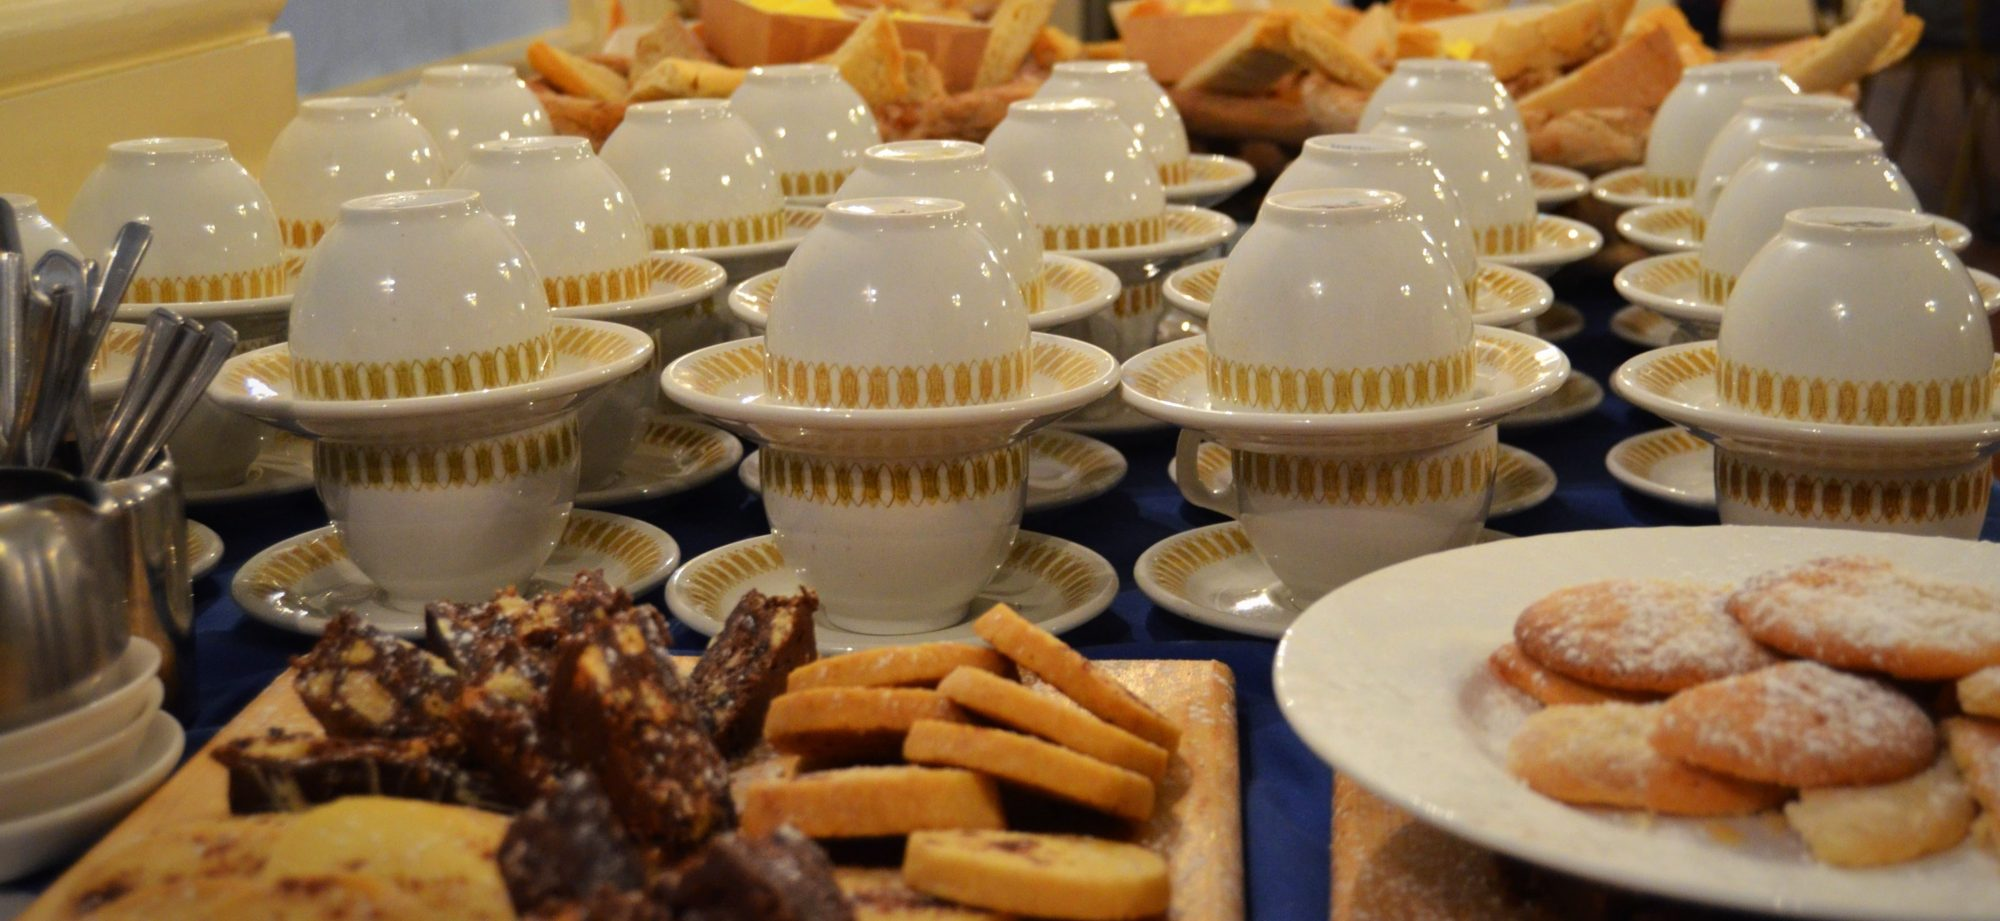 Coffee cups and biscuits at a networking event